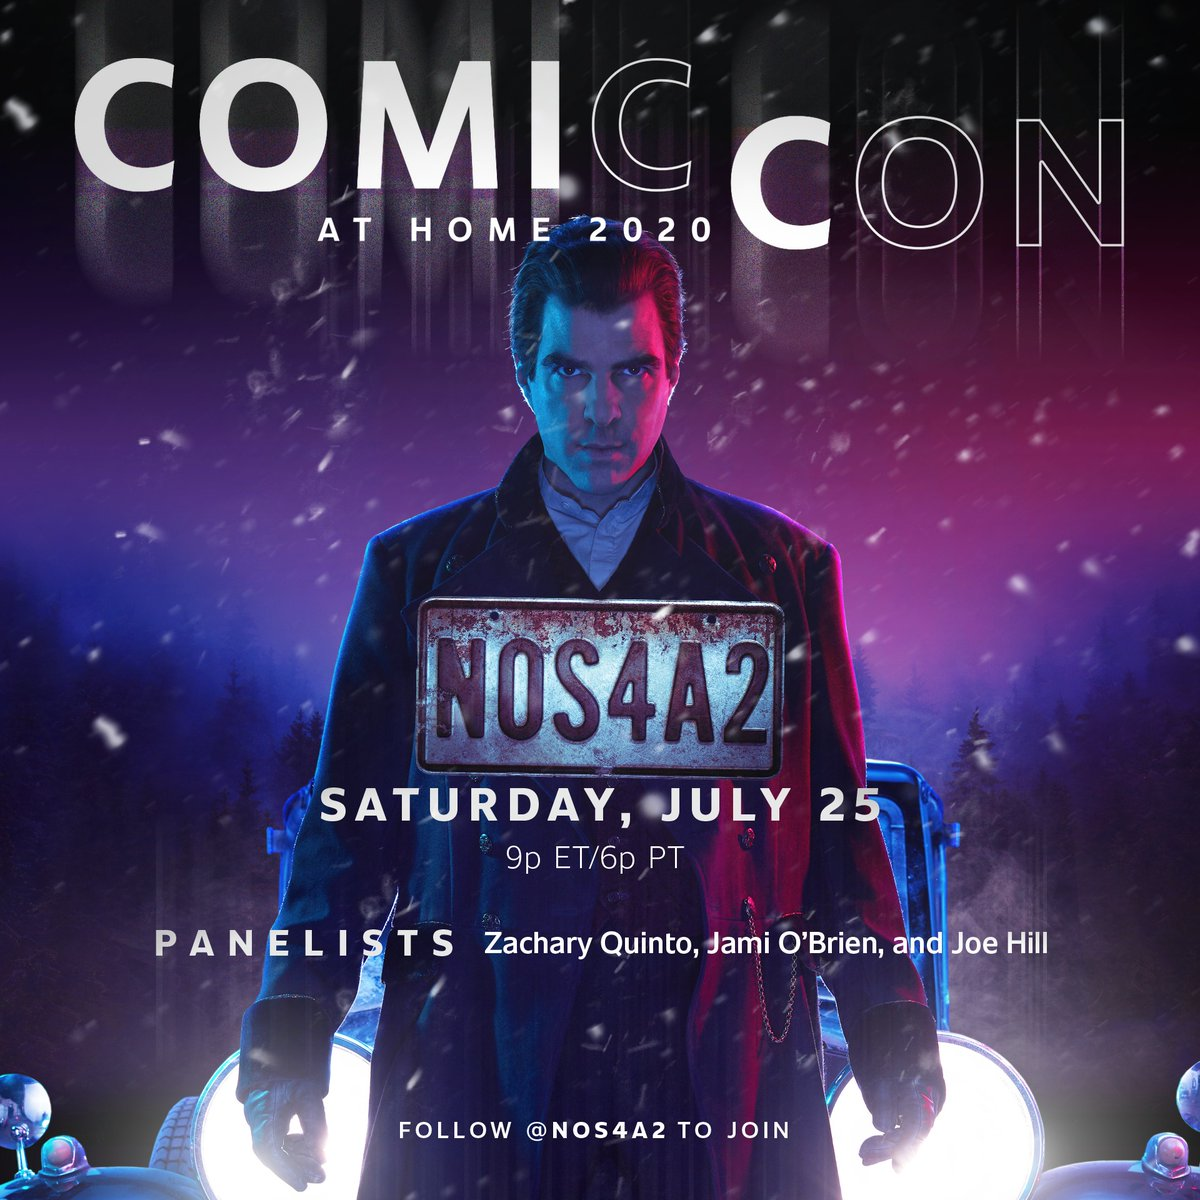 Christmasland in July. Join @zacharyquinto, @jami_obrien, and @joe_hill when they talk season 2 at #SDCC Saturday, July 25th at 6pm PT/9pmET. #ComicConAtHome